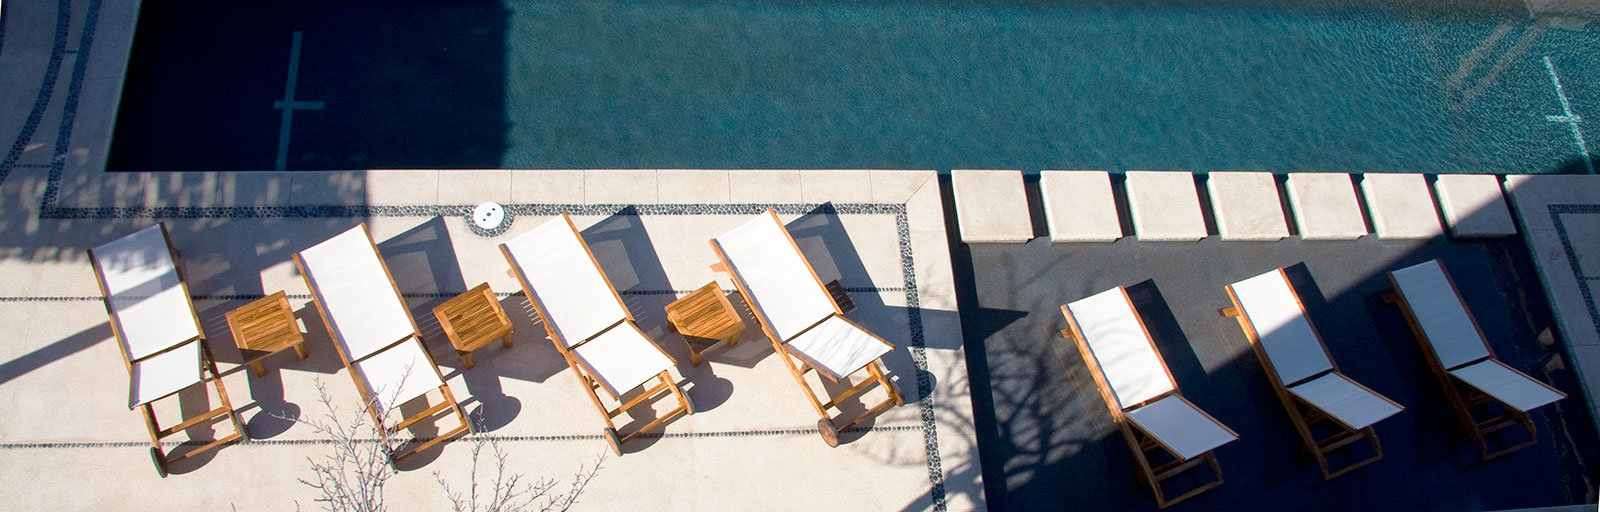 Yoga & Wellness Retreats in Mexico: Chaise Lounges at the Swimming Pool